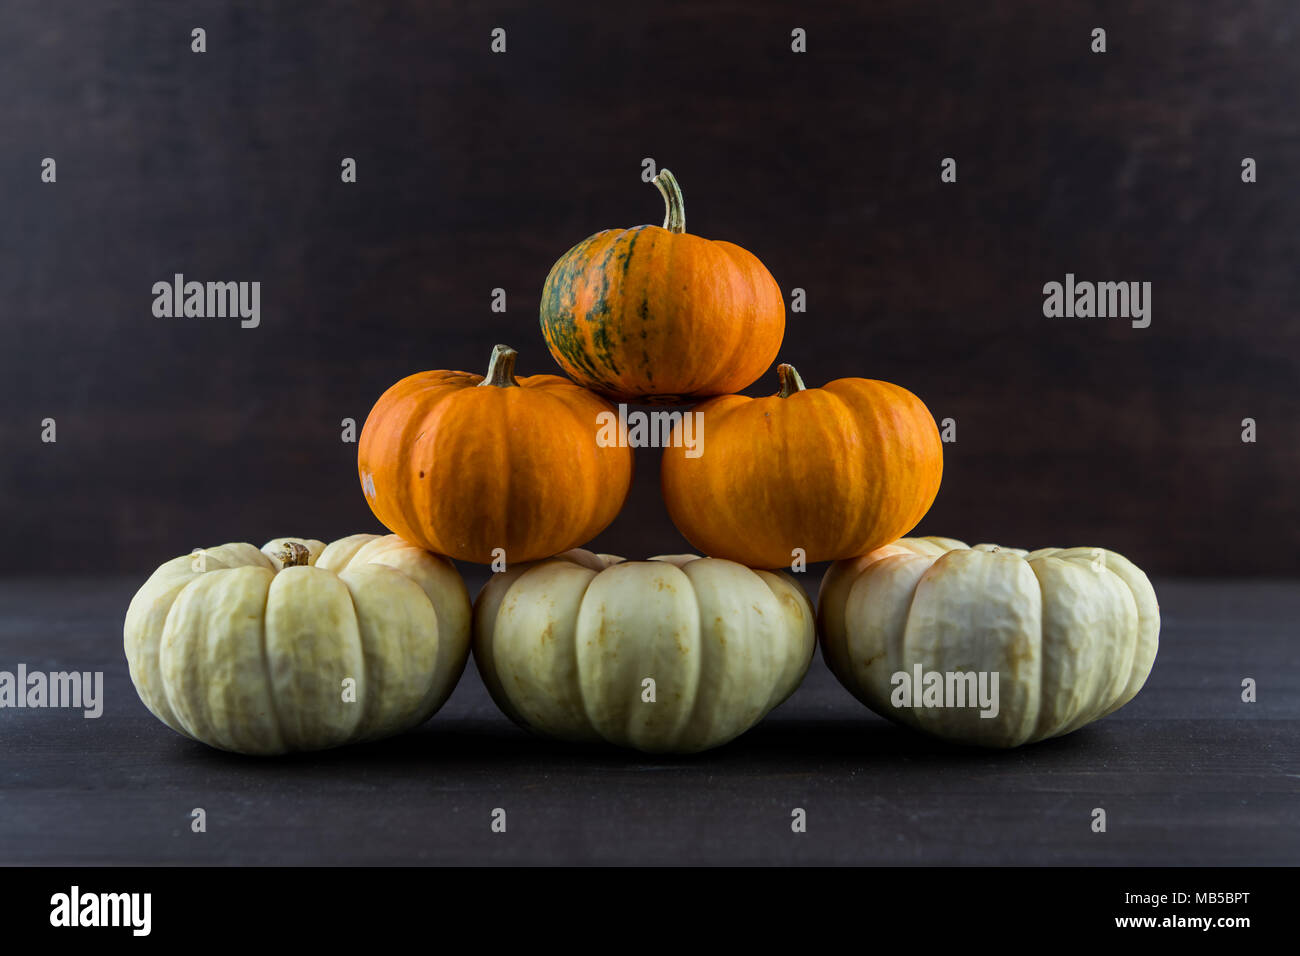 Baby Boo and Jack Be Little Pumpkins in Stack on dark background - Stock Image